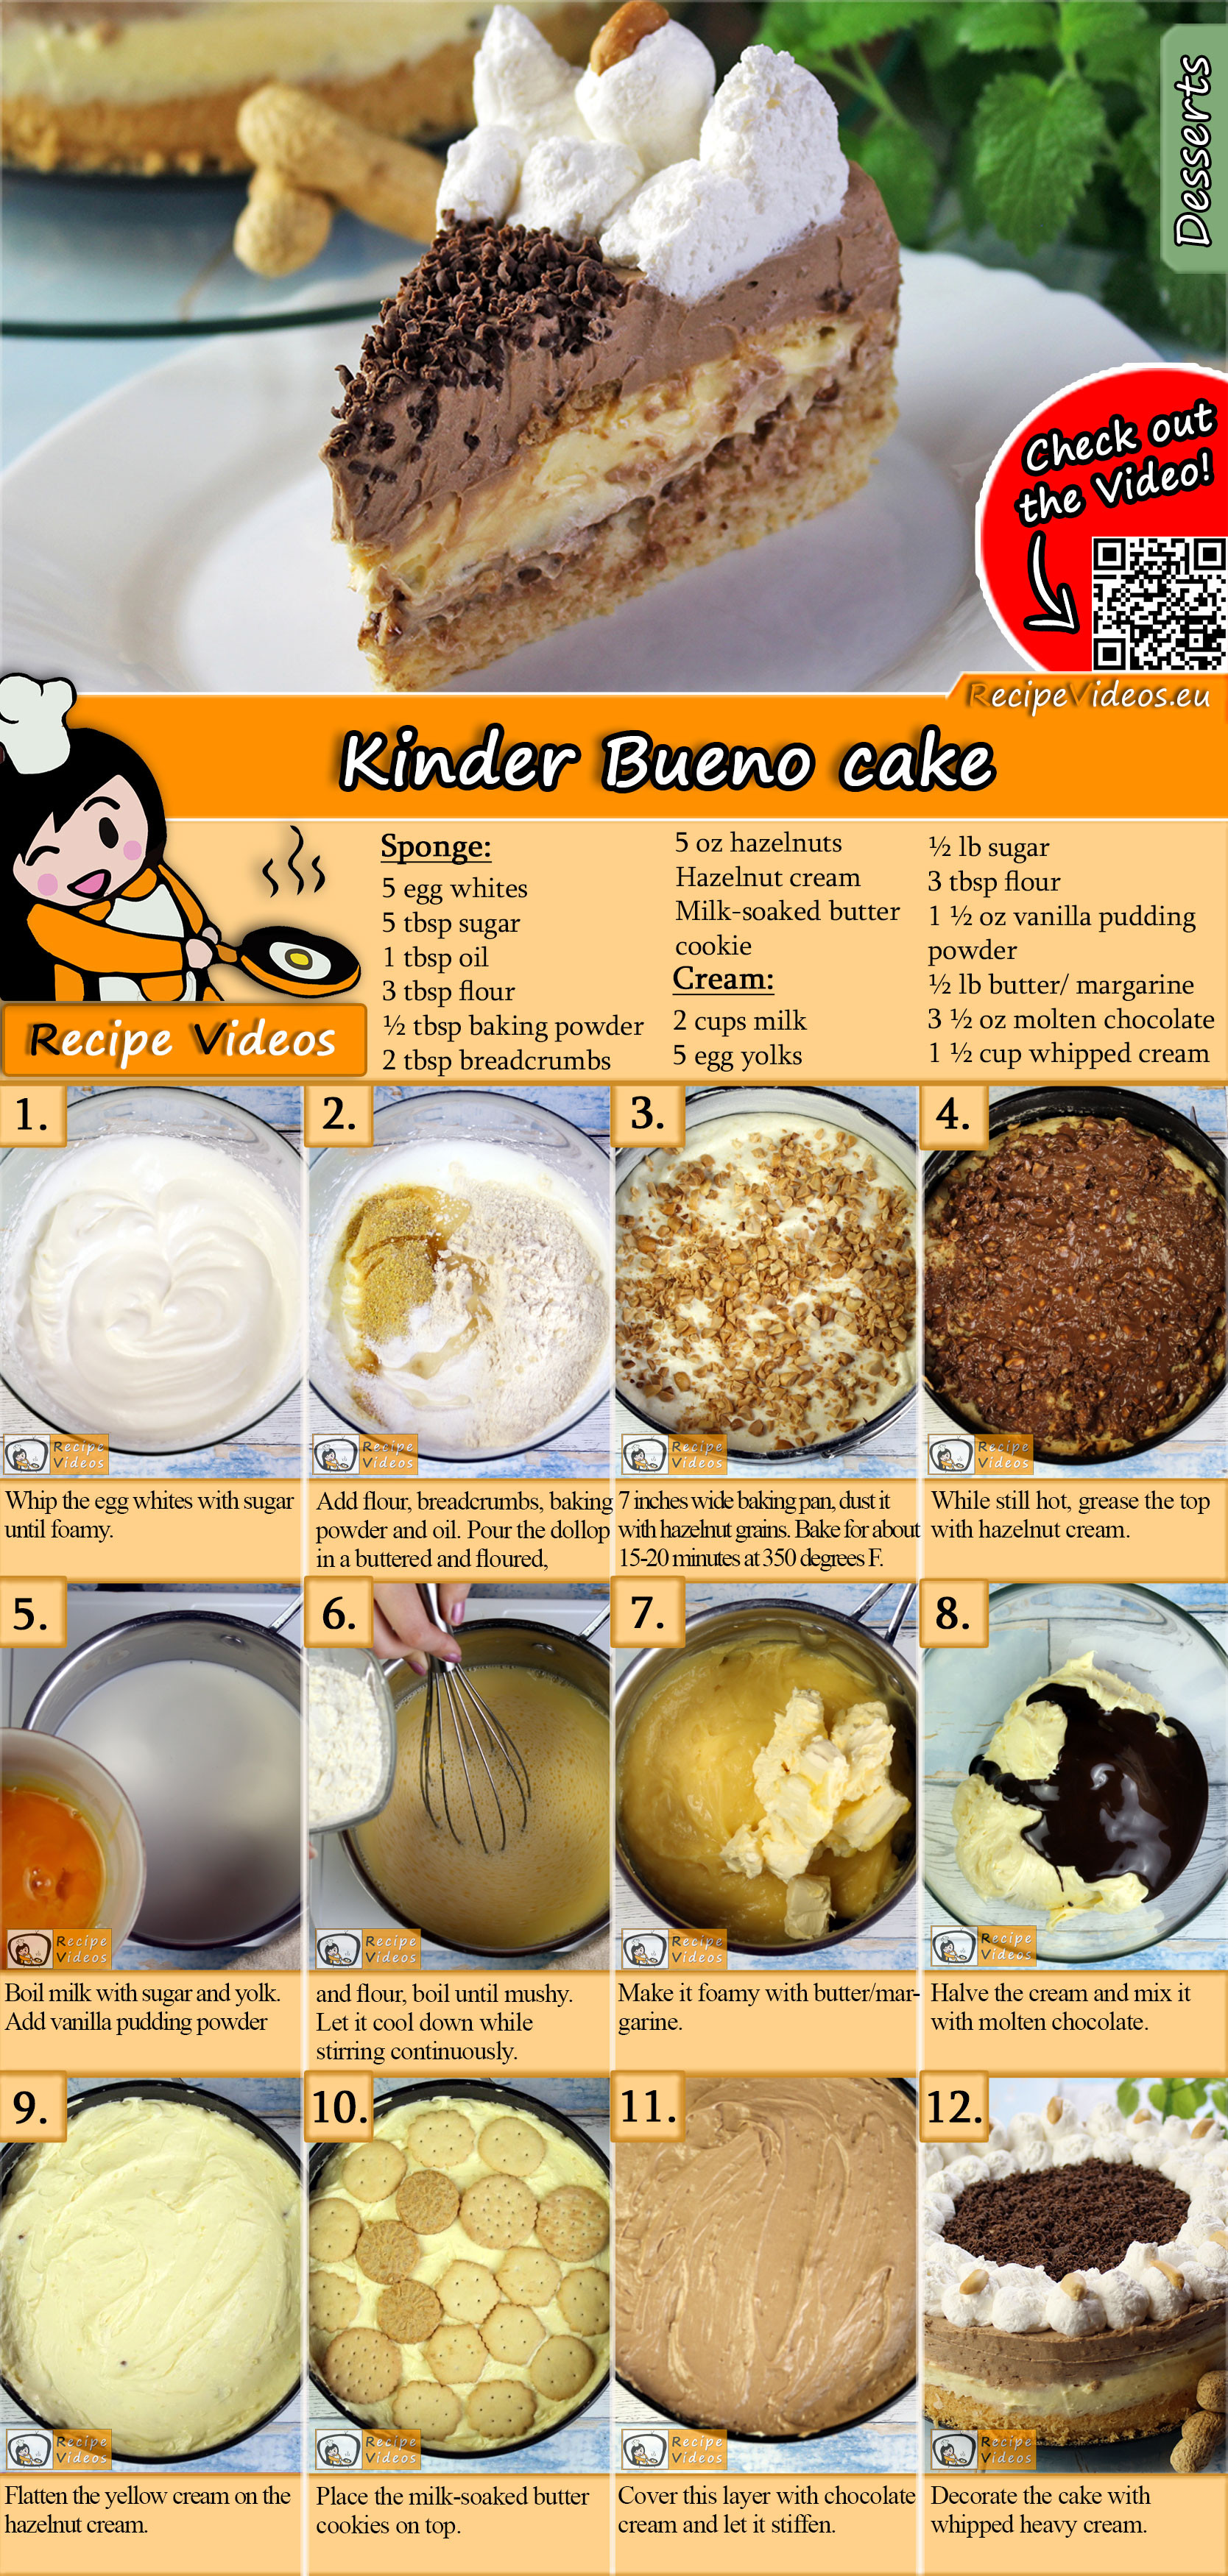 Kinder Bueno cake recipe with video